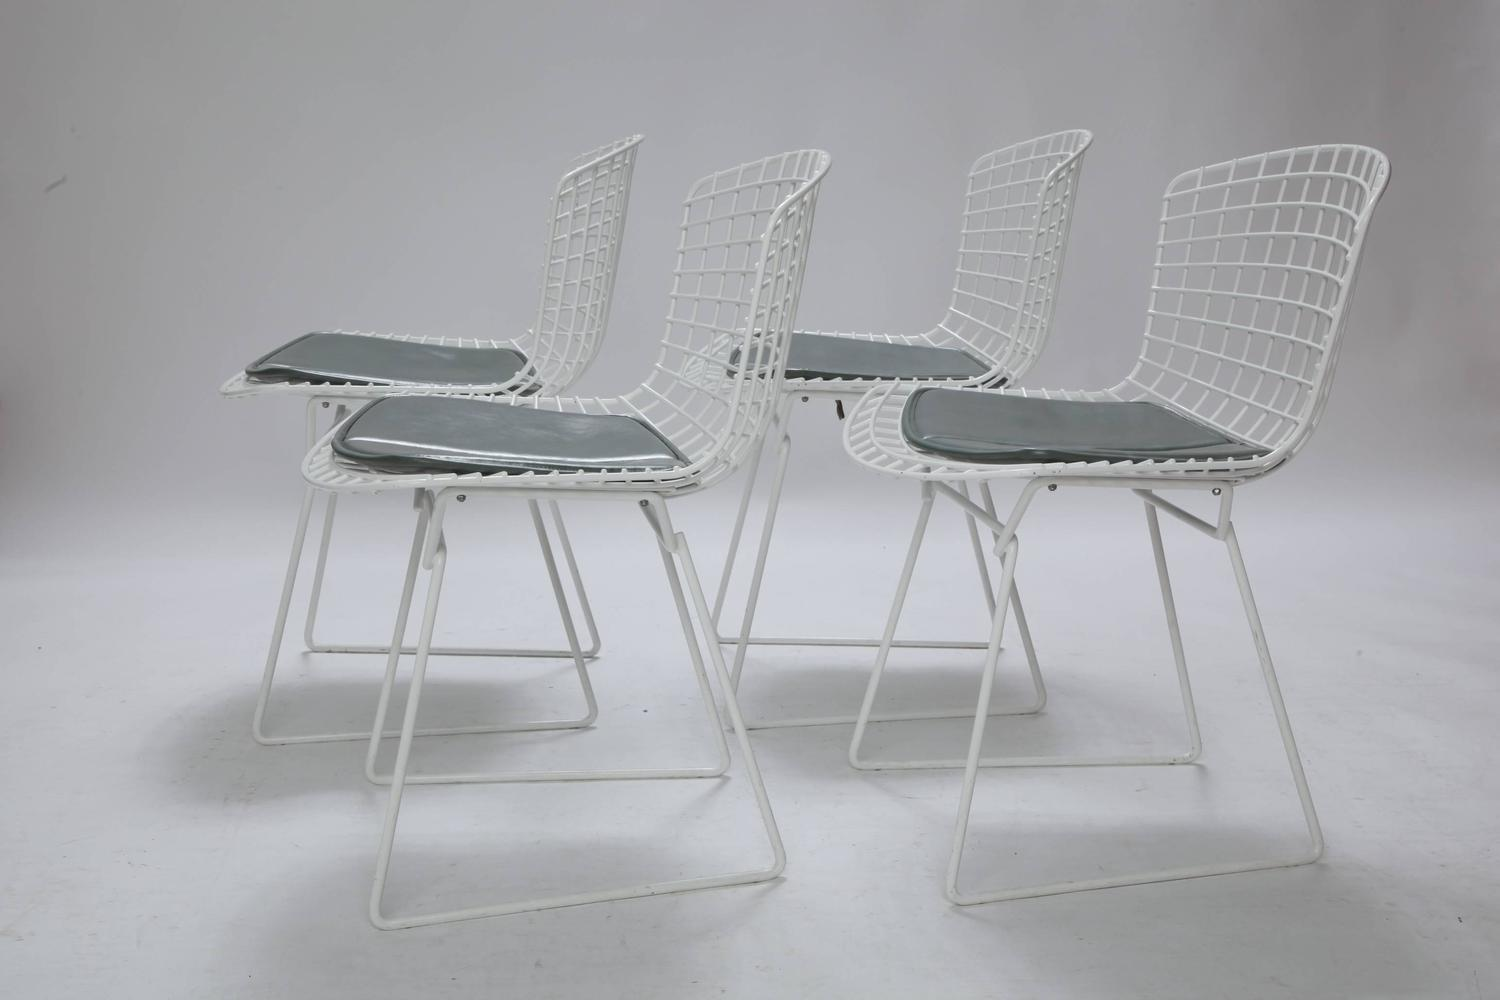 bertoia wire chair original chairs good for back problems four harry knoll with